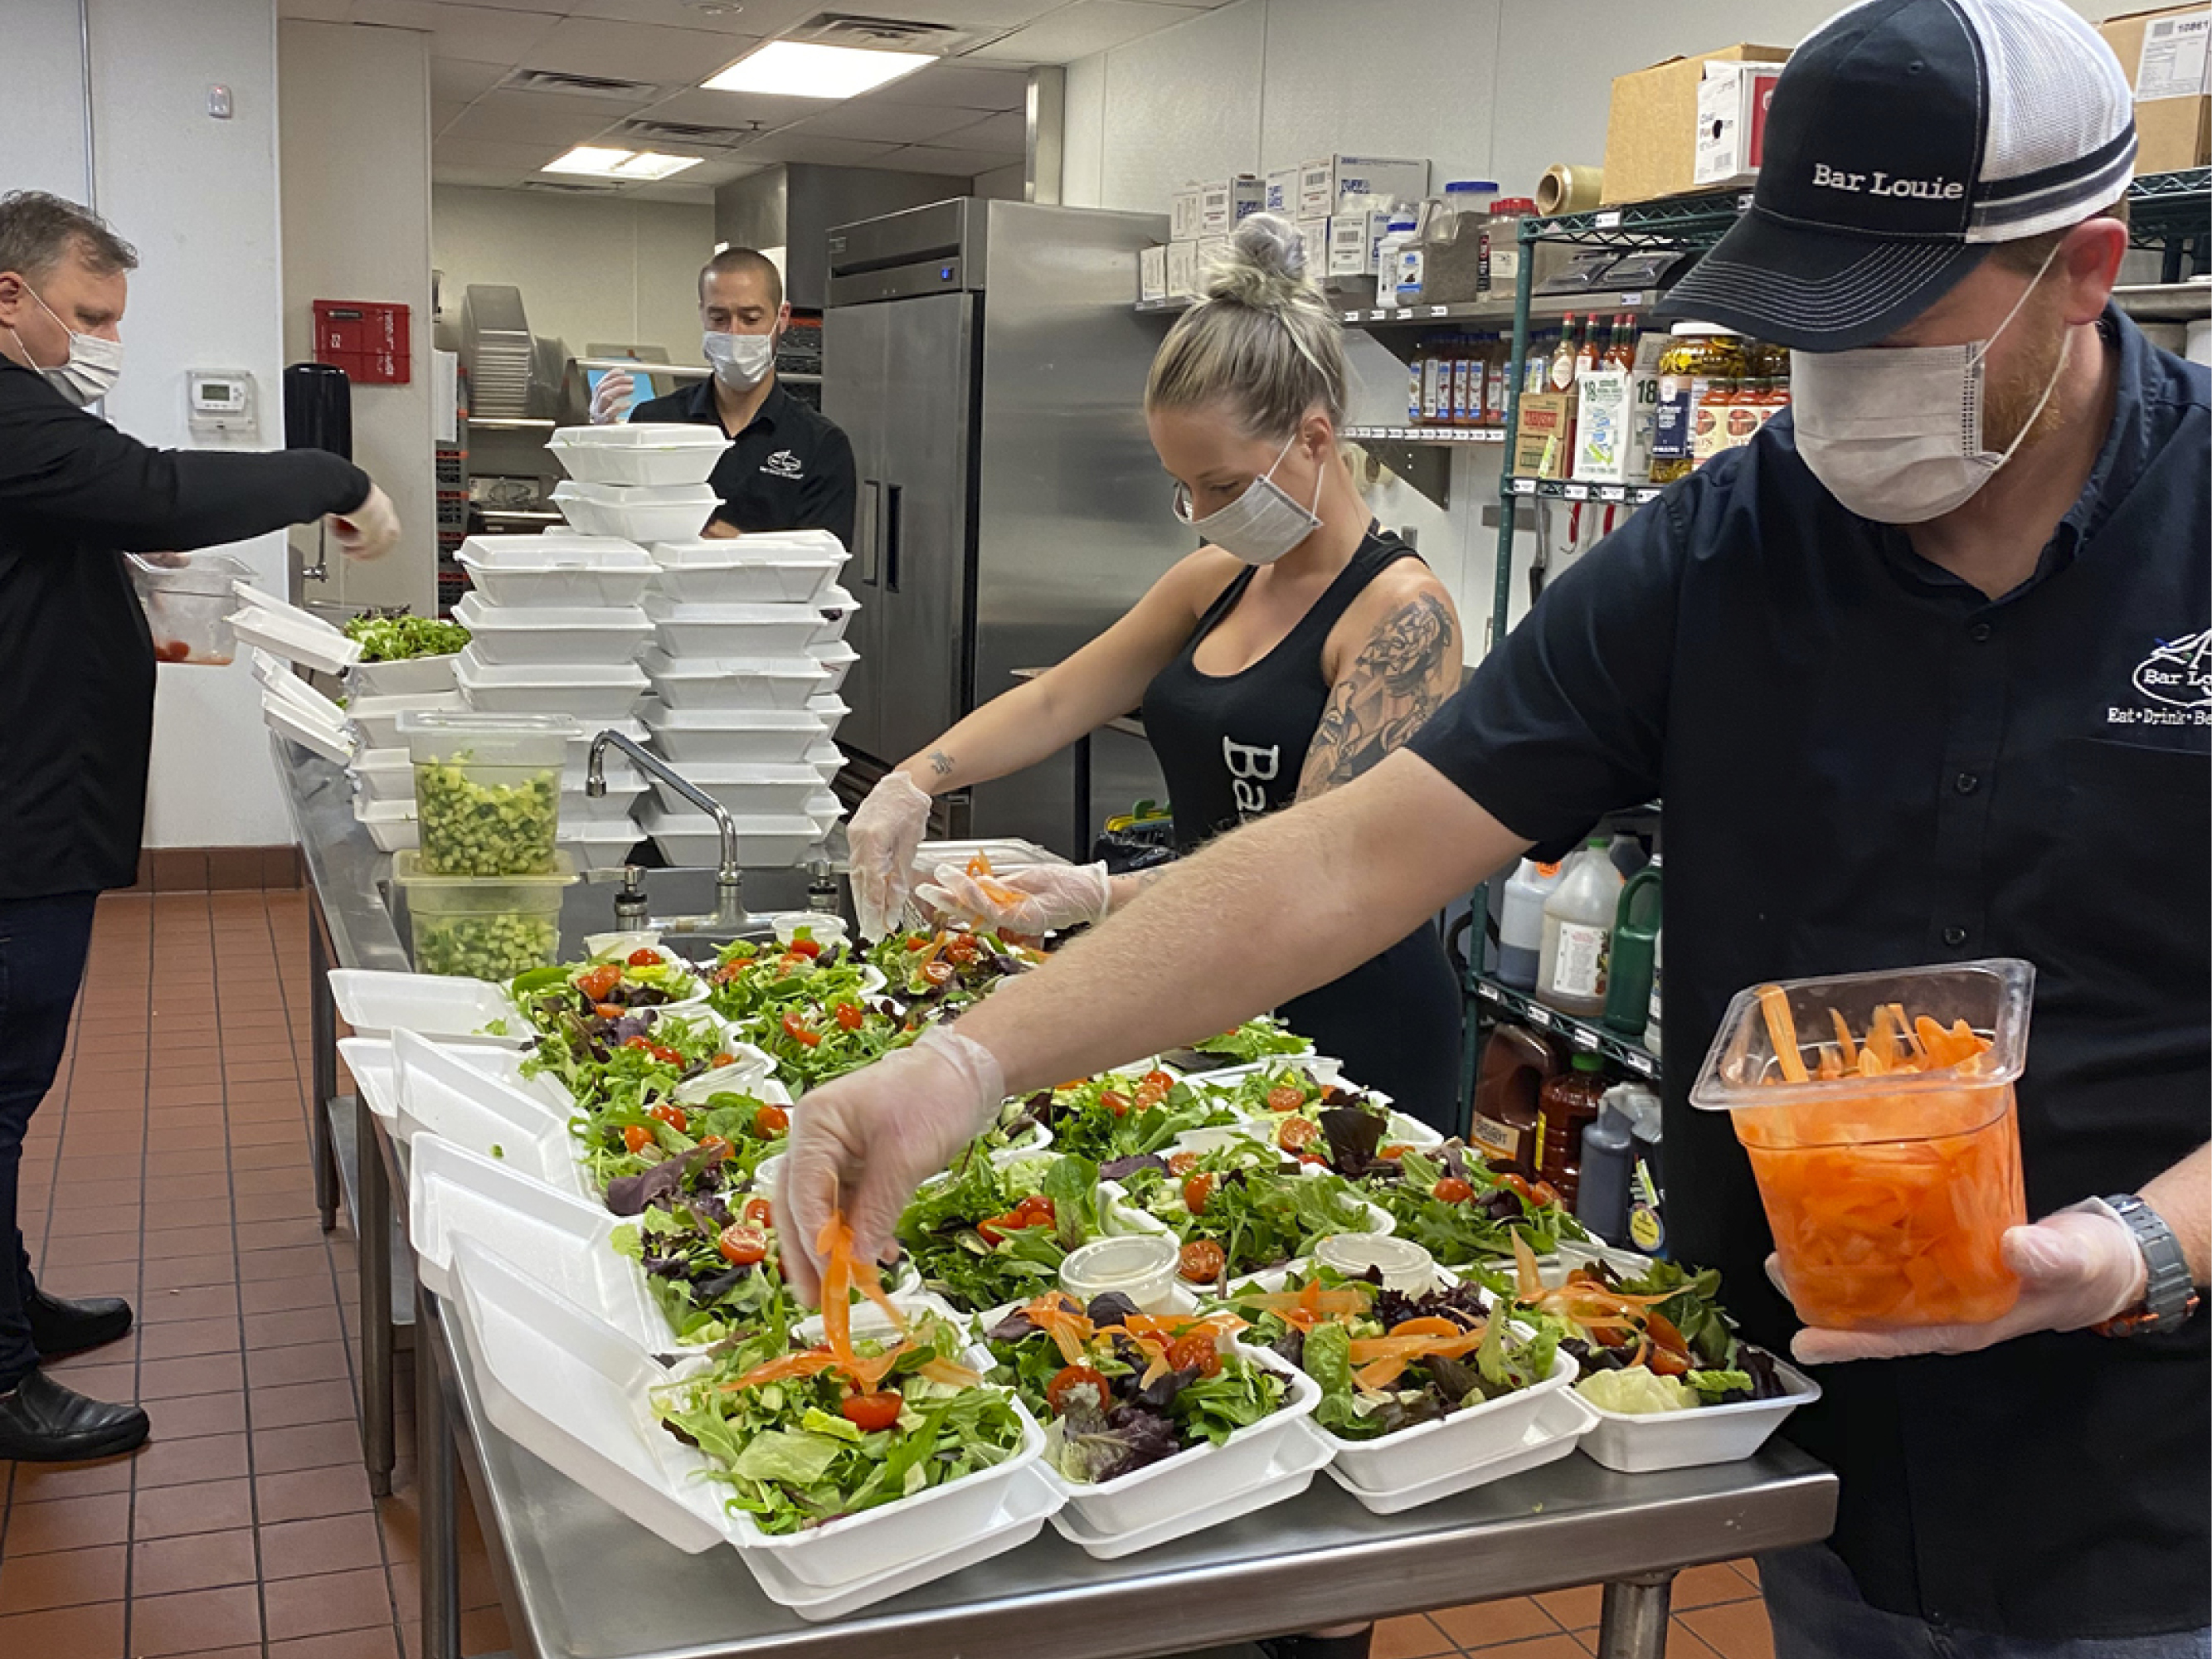 Bar Louie team members preparing meals to deliver to local front-line workers in the midst of COVID-19.